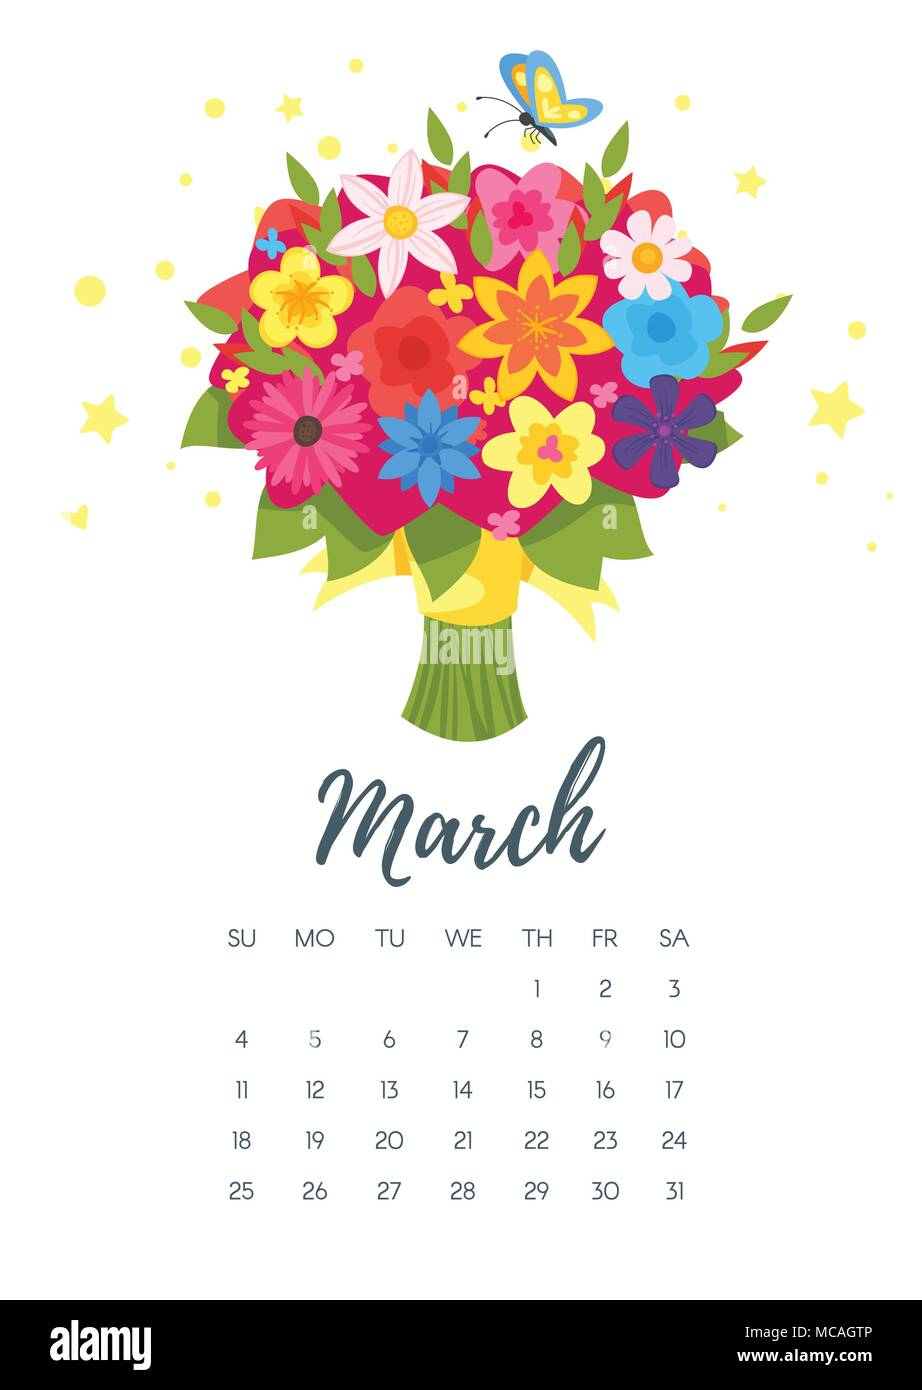 vector cartoon style illustration of march 2018 year calendar page with flower bouquet template for print